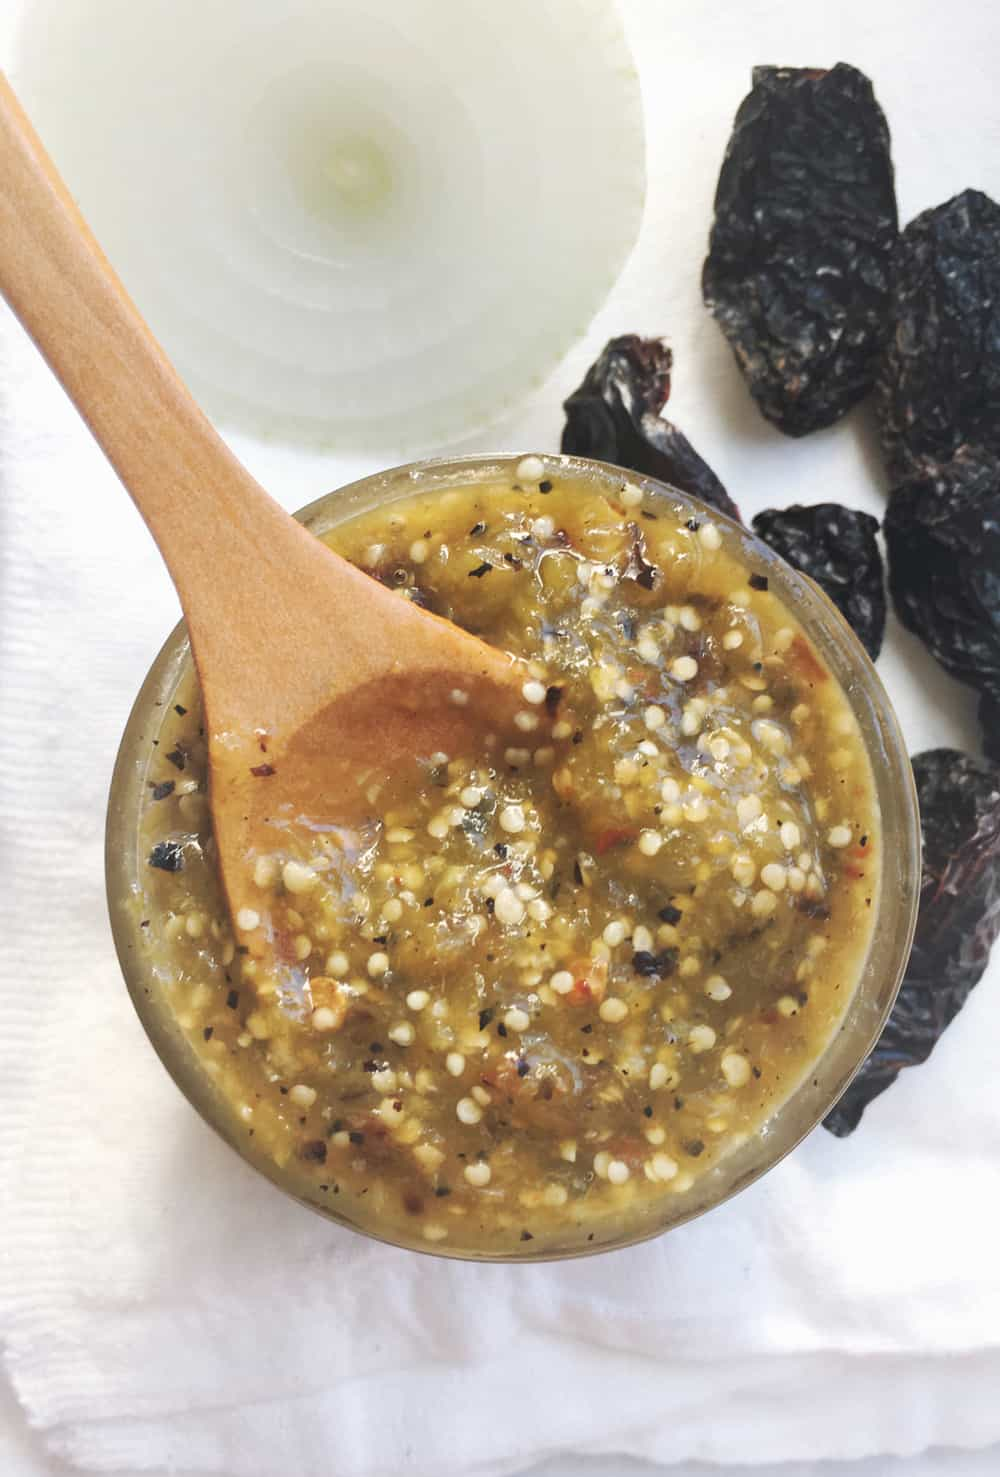 How to make a roasted tomatillo and chile morita salsa